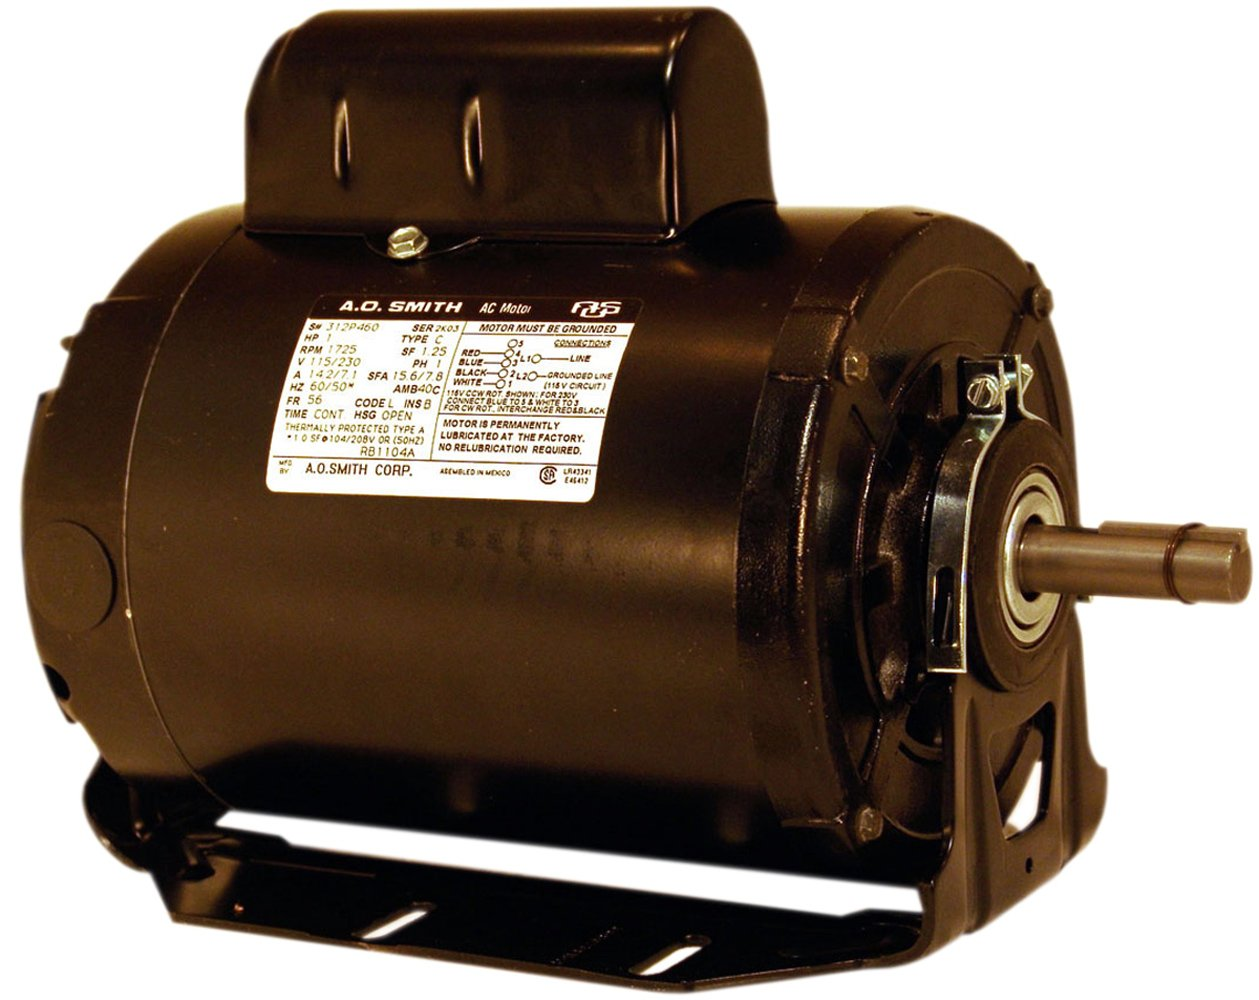 A.O. Smith RB1054AV1 1/2 HP, 1725 RPM, 115/230 Volts, 56 Frame, Open Enclosure, Ball Bearing Capacitor Start Motor by A. O. Smith B007ATNEVQ